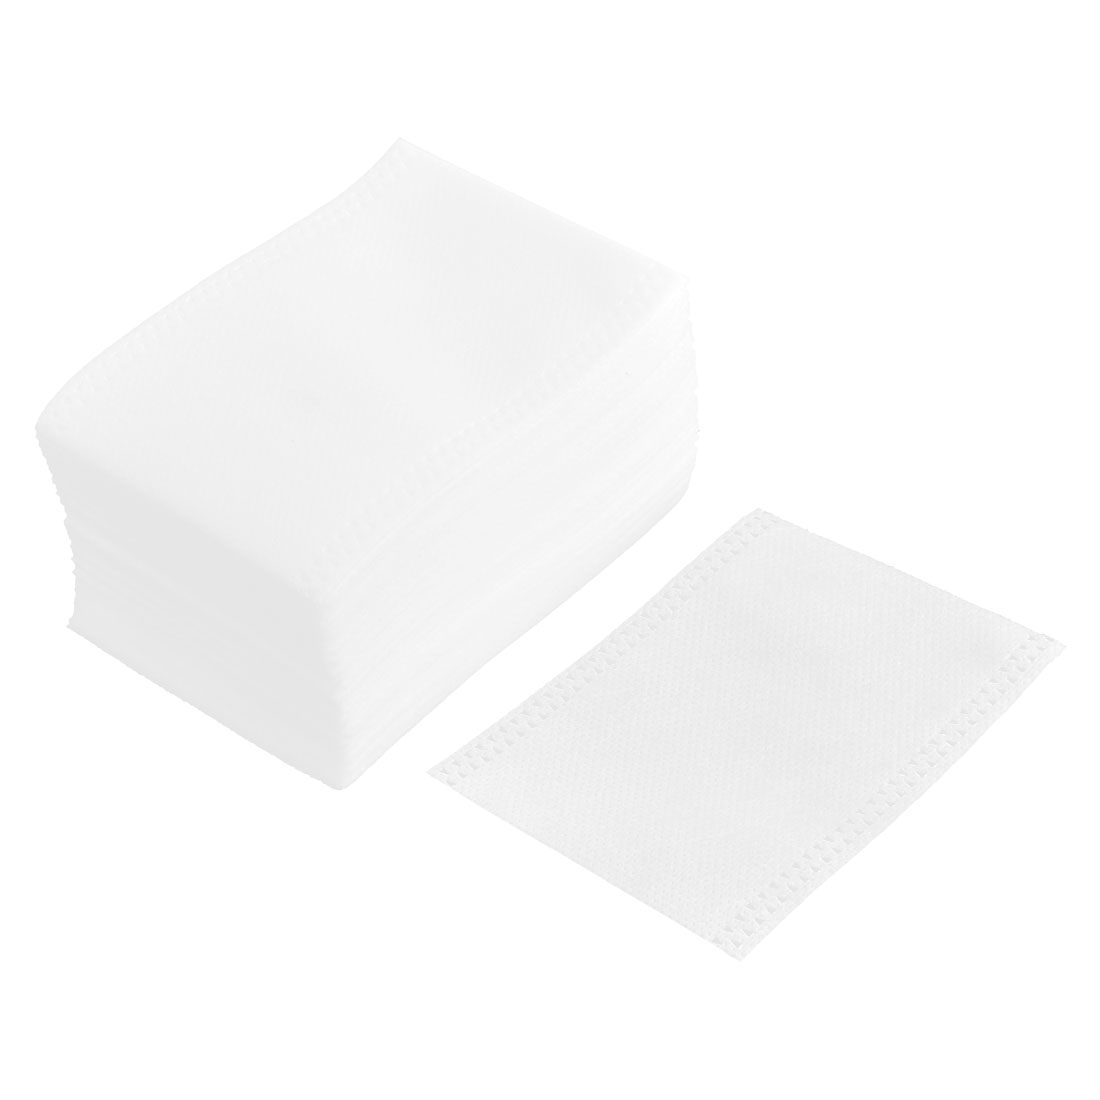 Household Non-woven Fabric Empty Powder Spice Tea Filter Bag White 100 Pcs